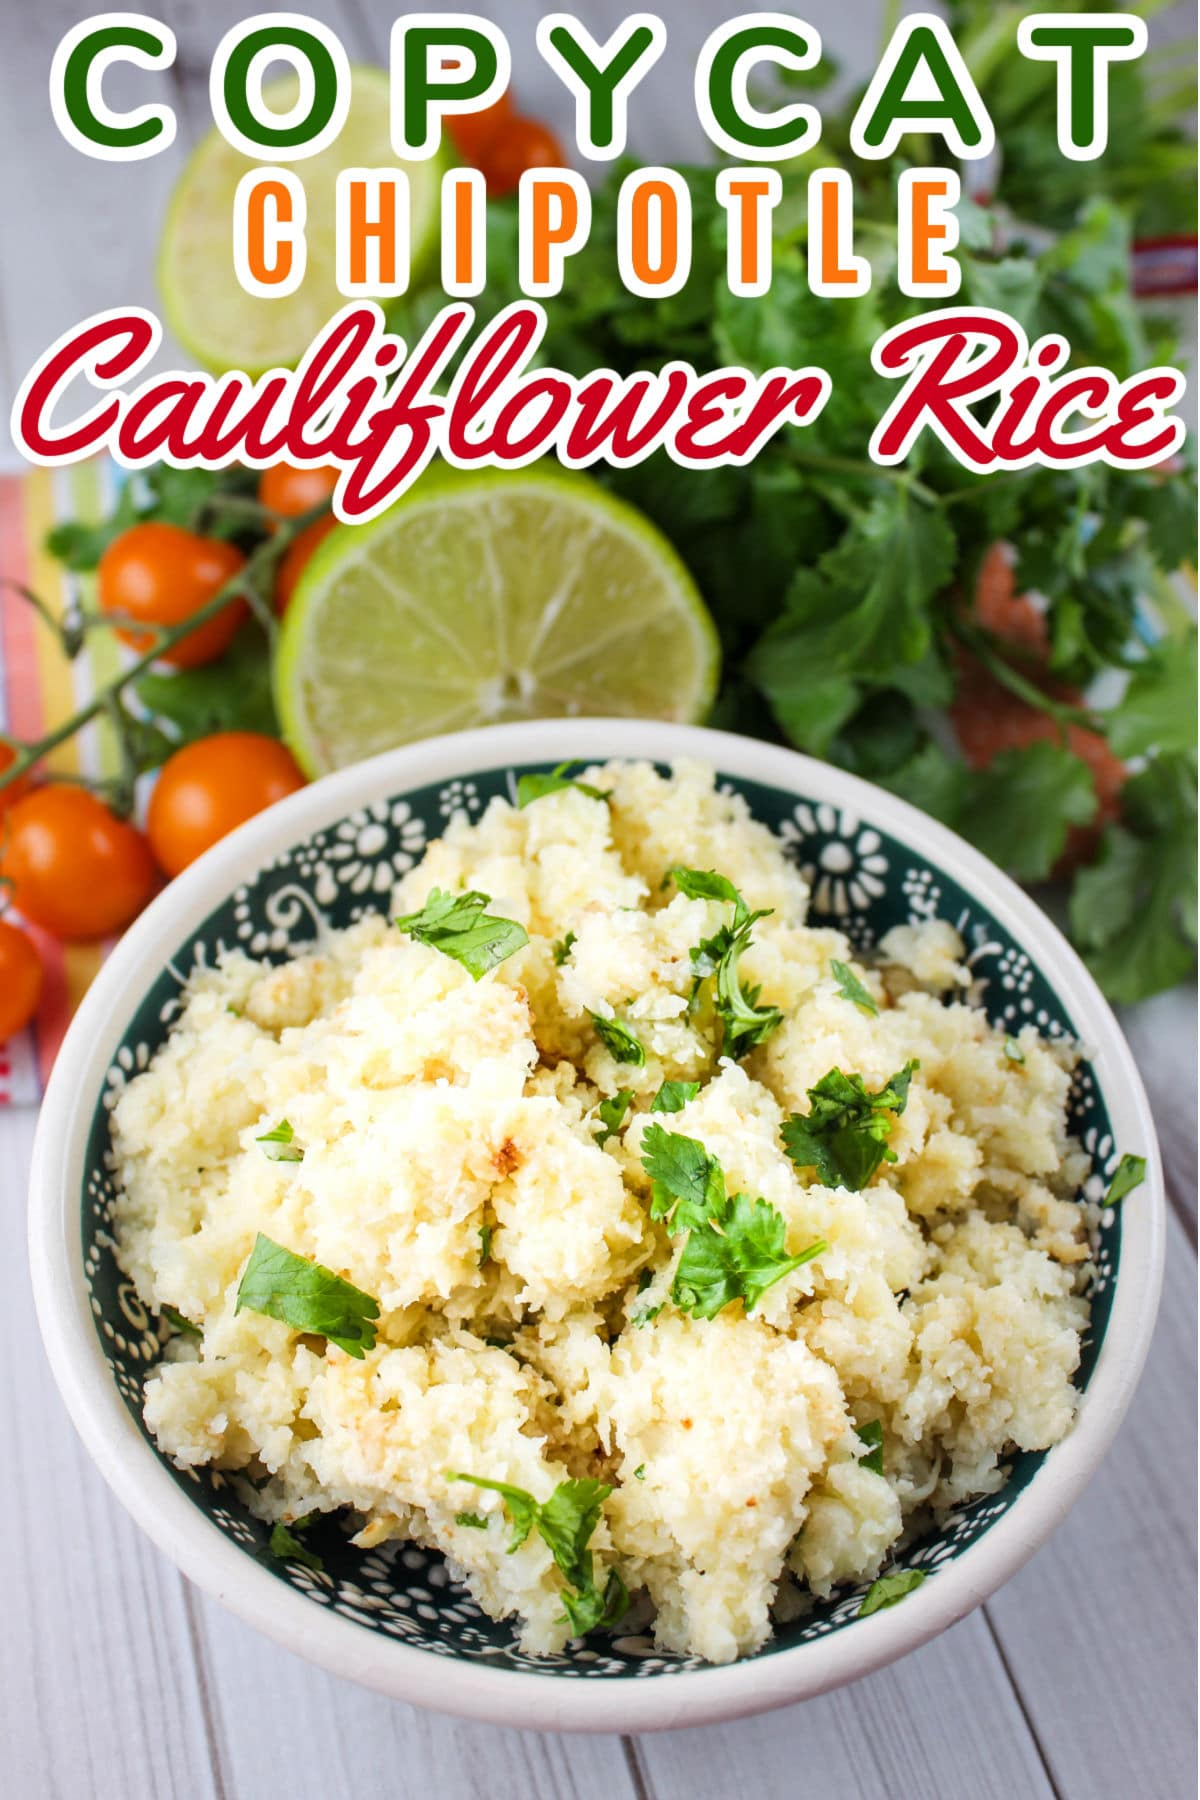 Copycat Chipotle Cauliflower Rice sure has saved the day in my house! I made this cauliflower rice in about 10 minutes and it's super tasty!  via @foodhussy